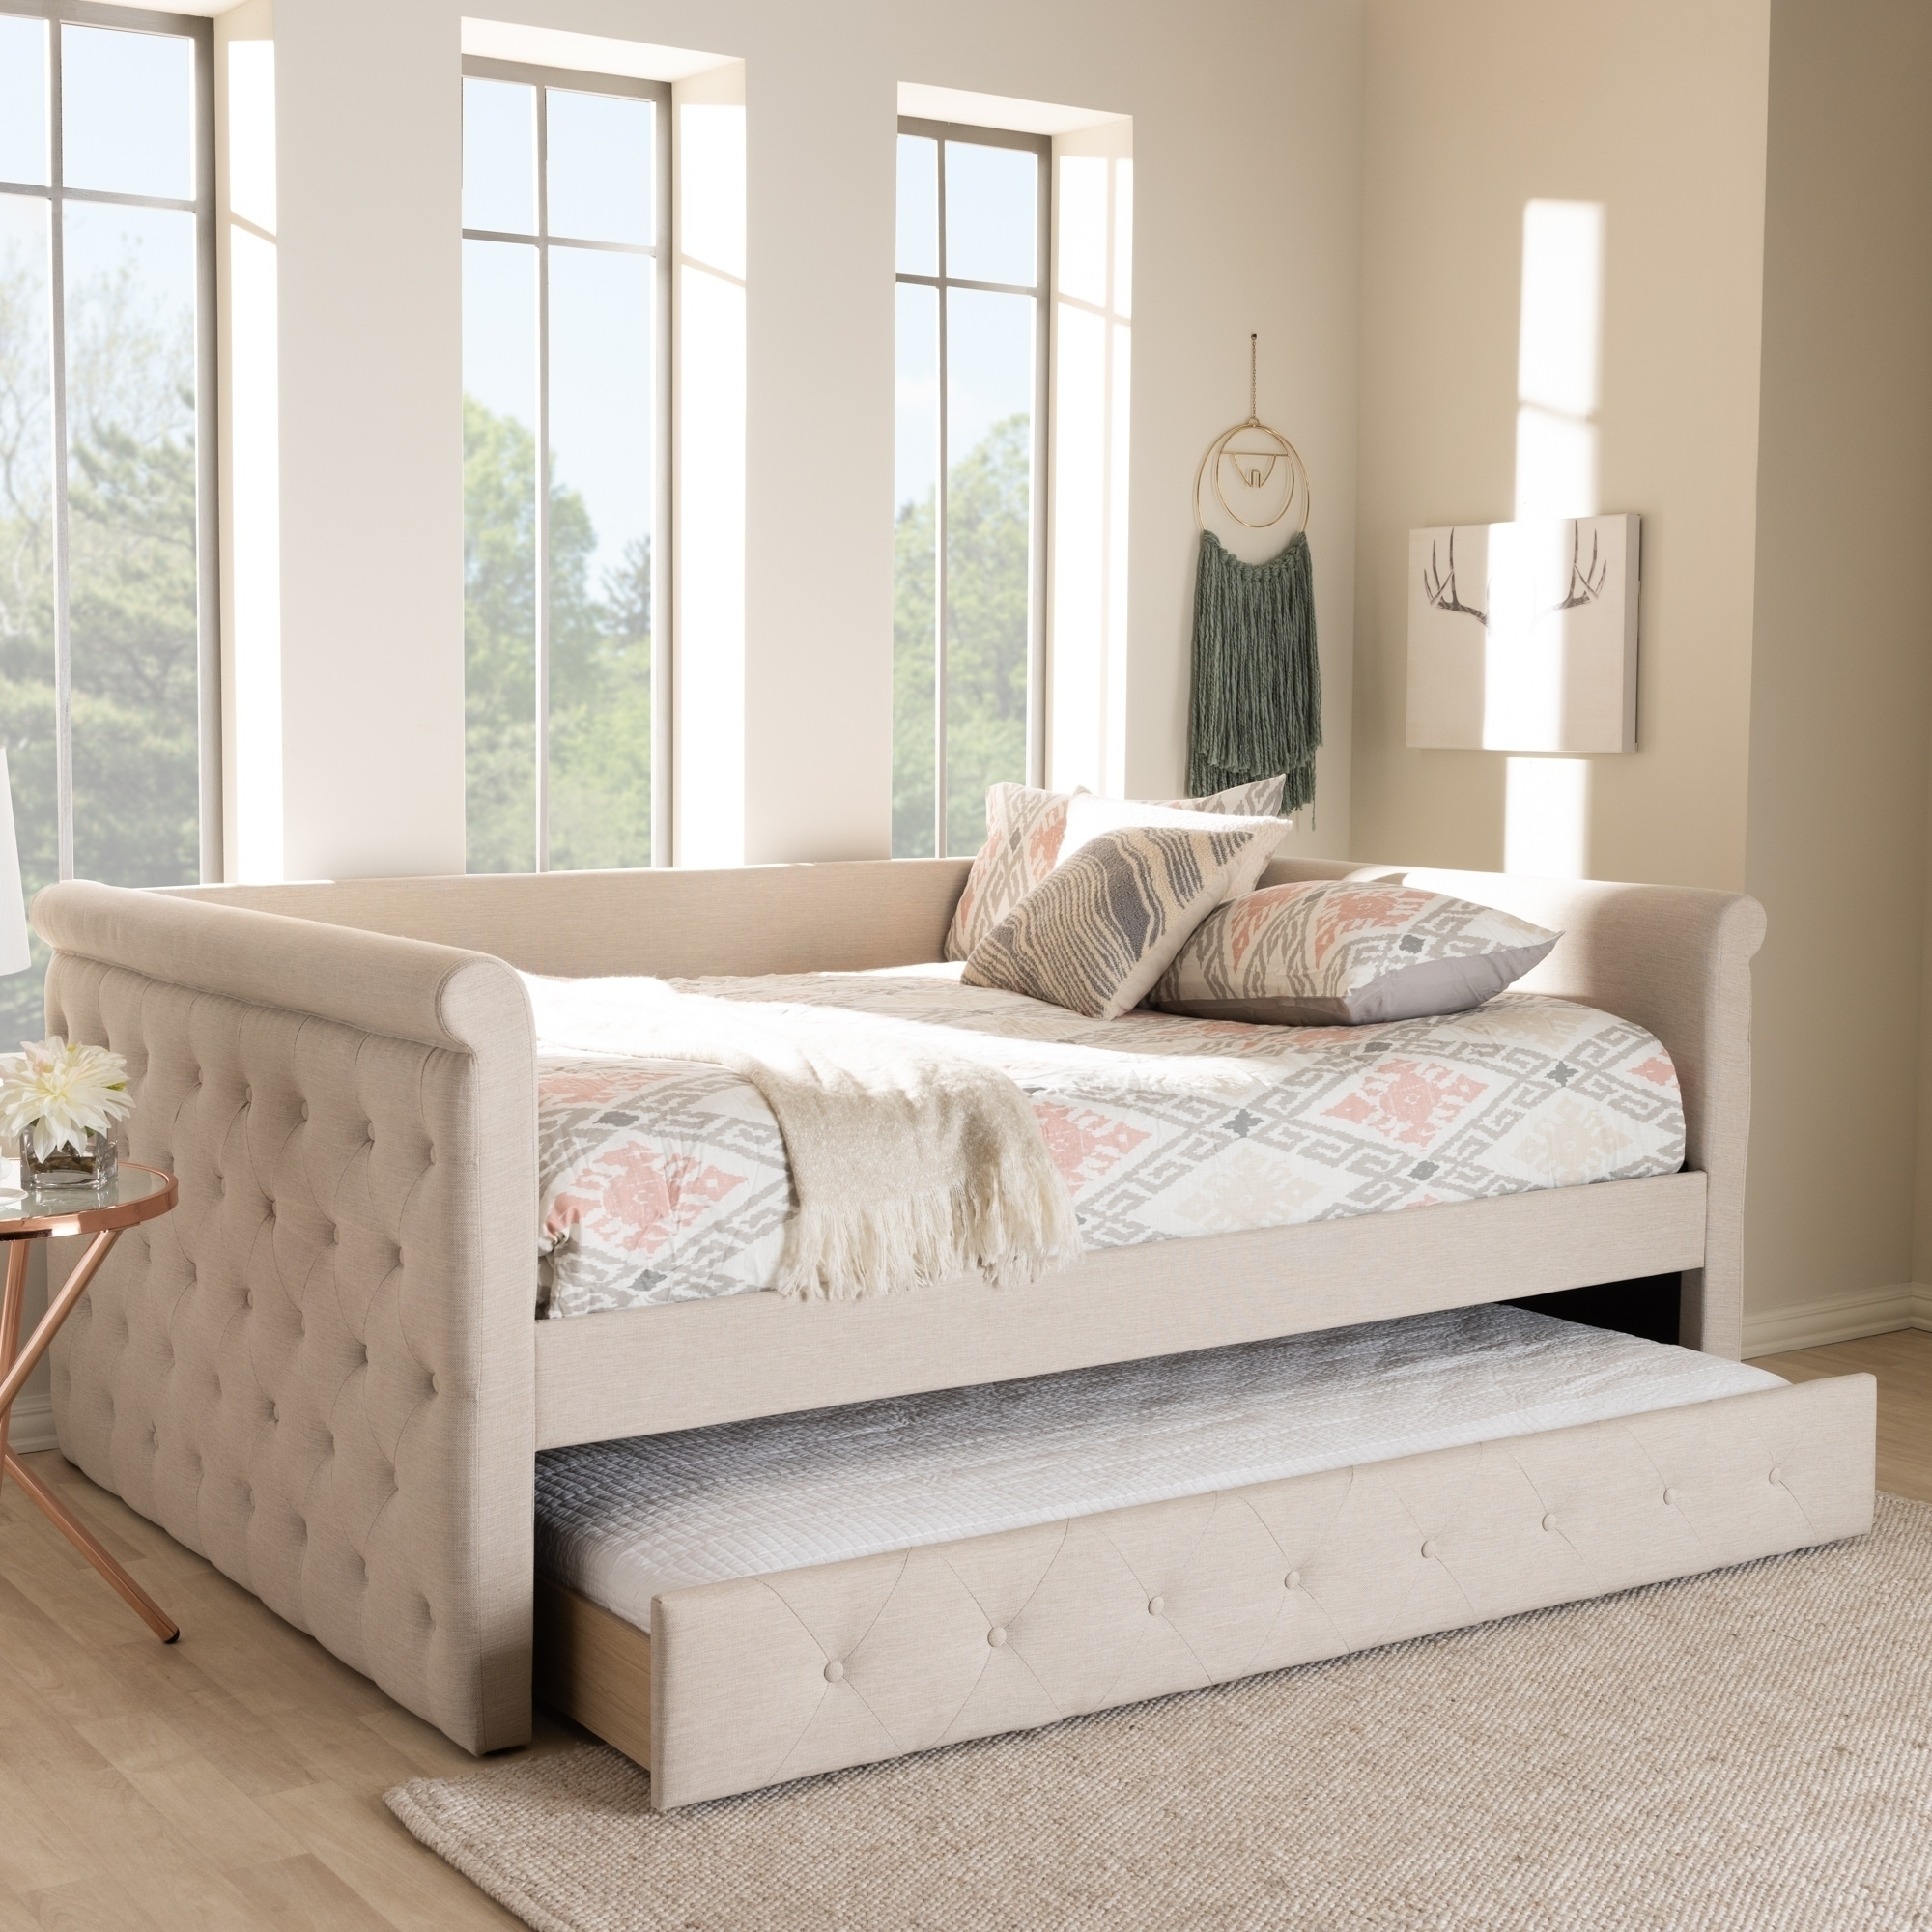 Fabulous Buy Daybed Online At Overstock Our Best Bedroom Furniture Lamtechconsult Wood Chair Design Ideas Lamtechconsultcom